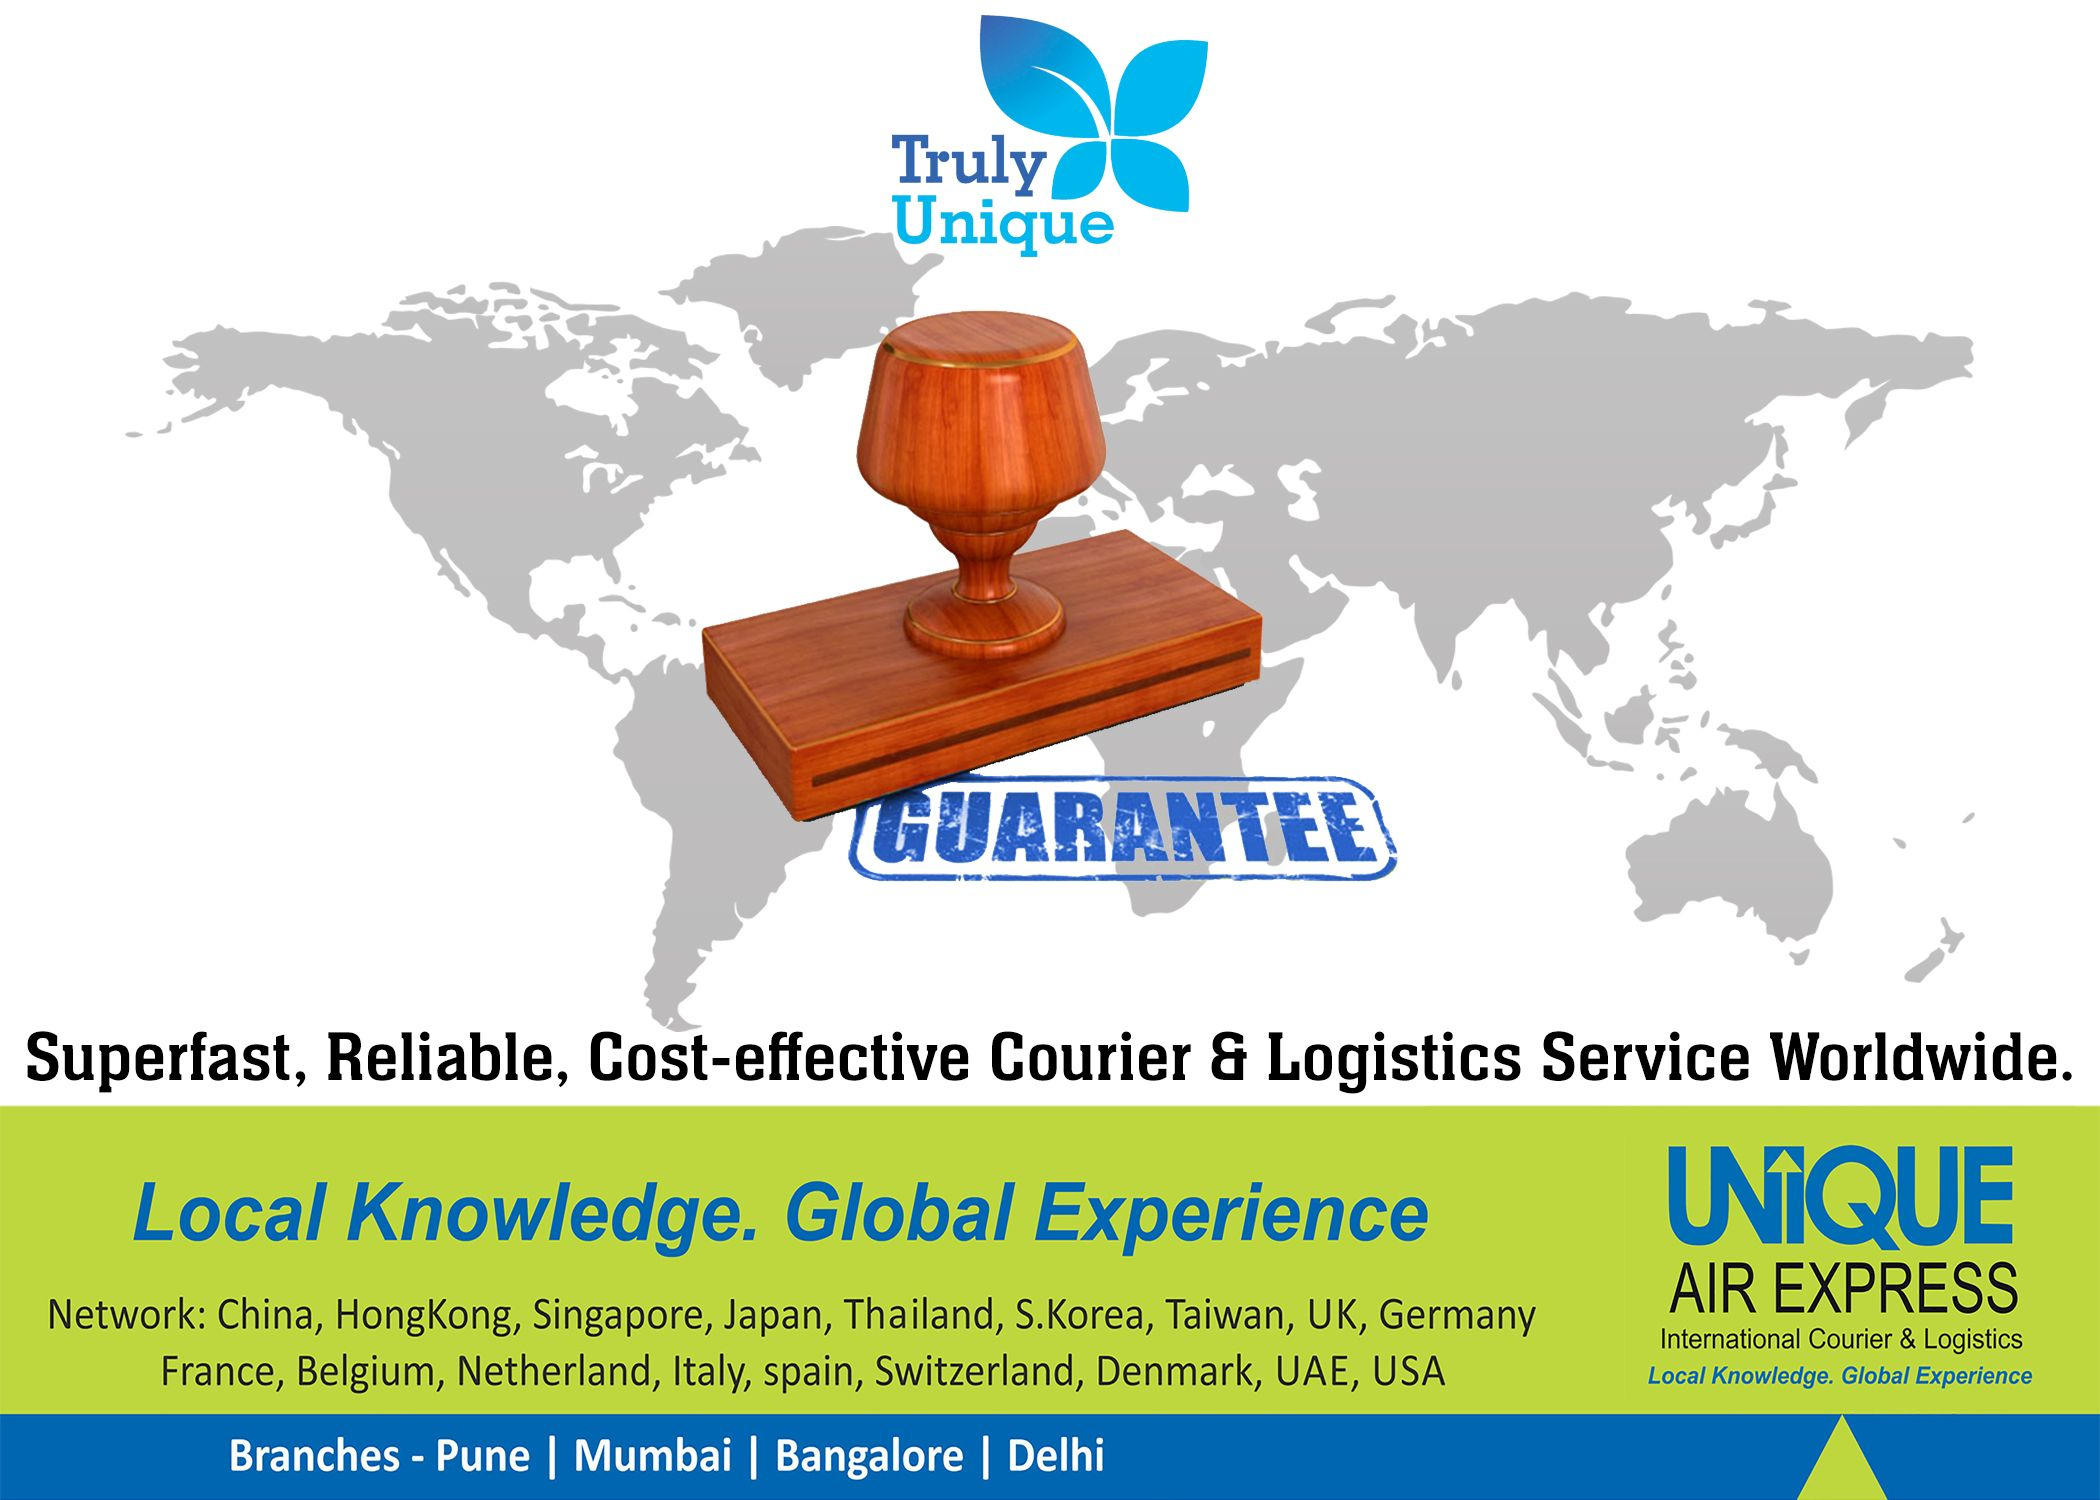 Unique Air Express provides Superfast, Reliable and Cost